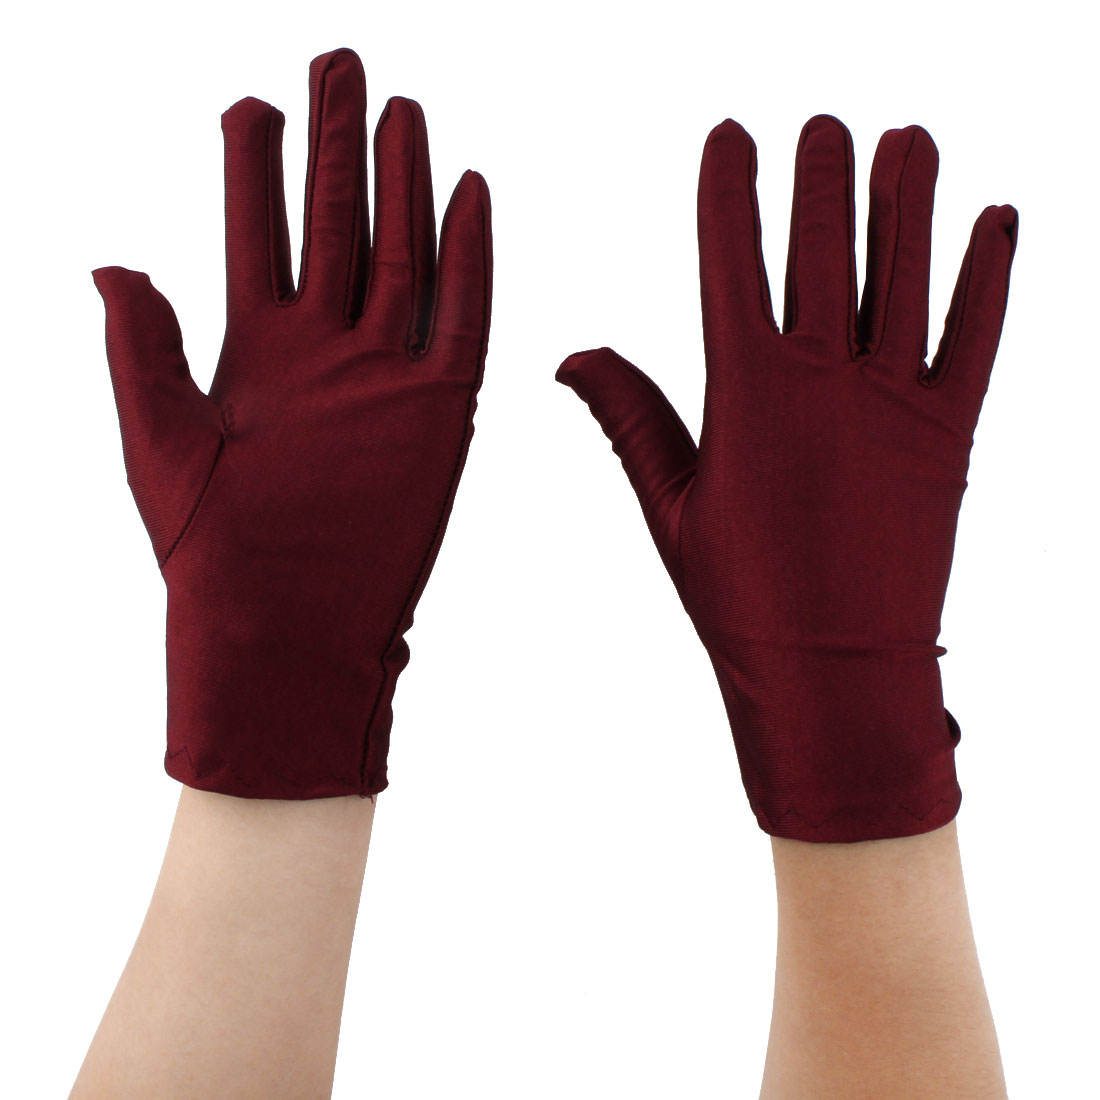 Lady Outdoor Cycling Riding Biking Sun Resistant Gloves Mittens Burgundy Pair